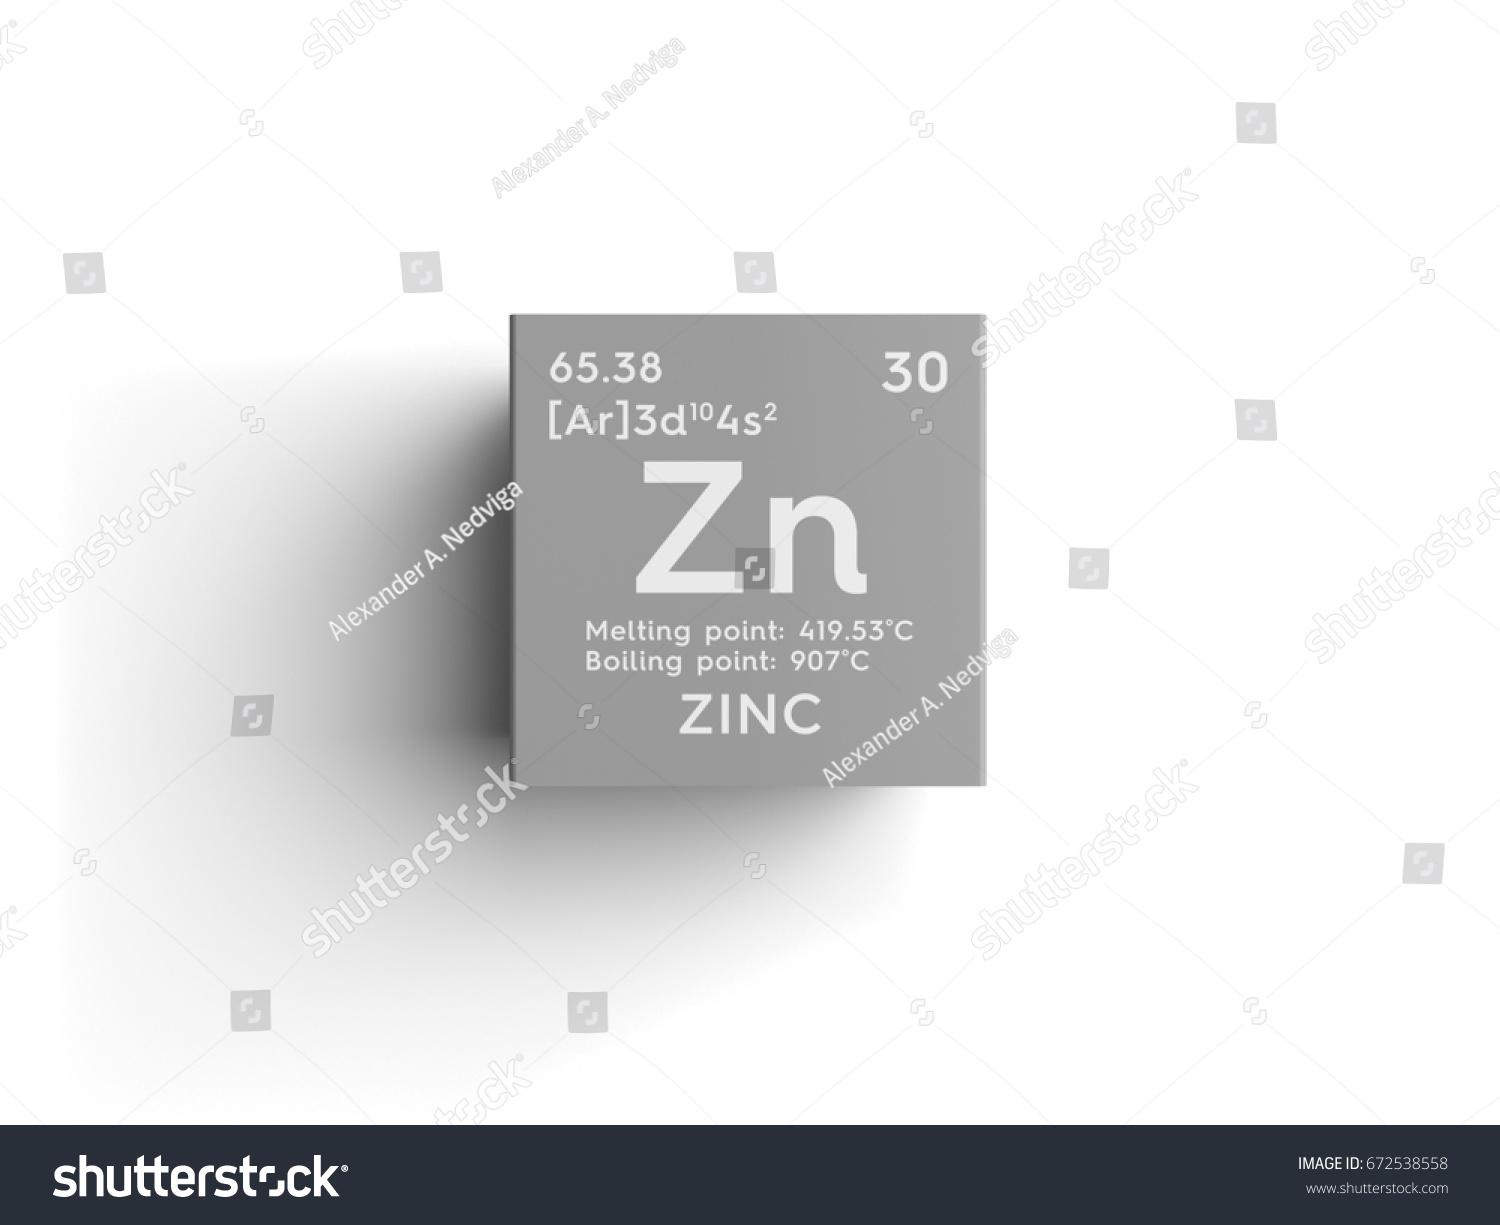 Zinc transition metals chemical element mendeleevs stock zinc transition metals chemical element of mendeleevs periodic table zinc in square cube gamestrikefo Image collections